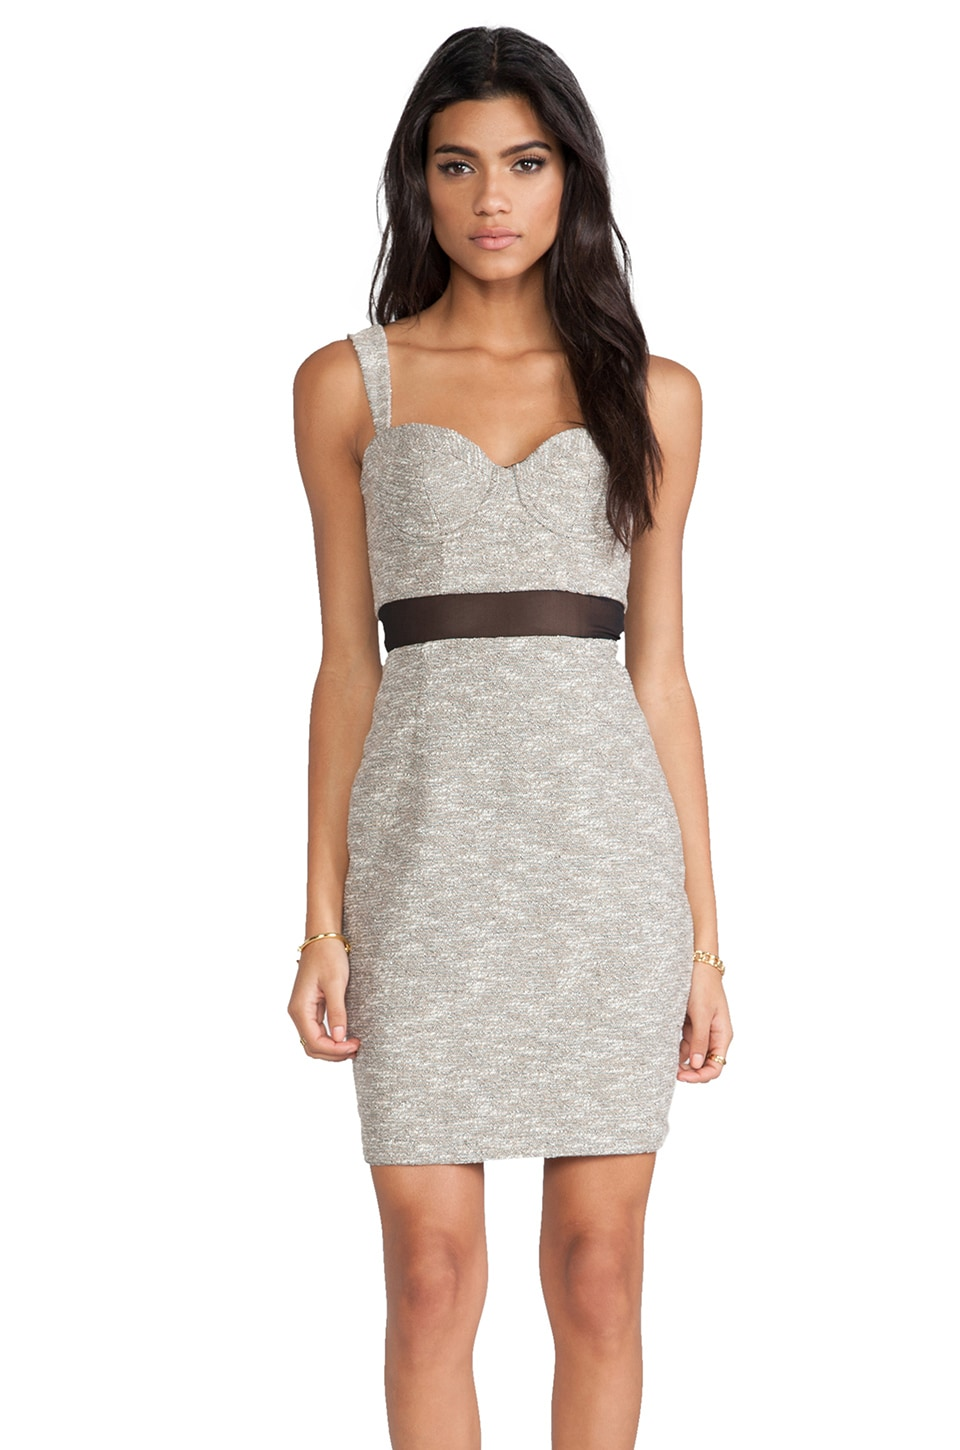 Paper Crown by Lauren Conrad Canal Dress in Silver Tweed Black Chiffon